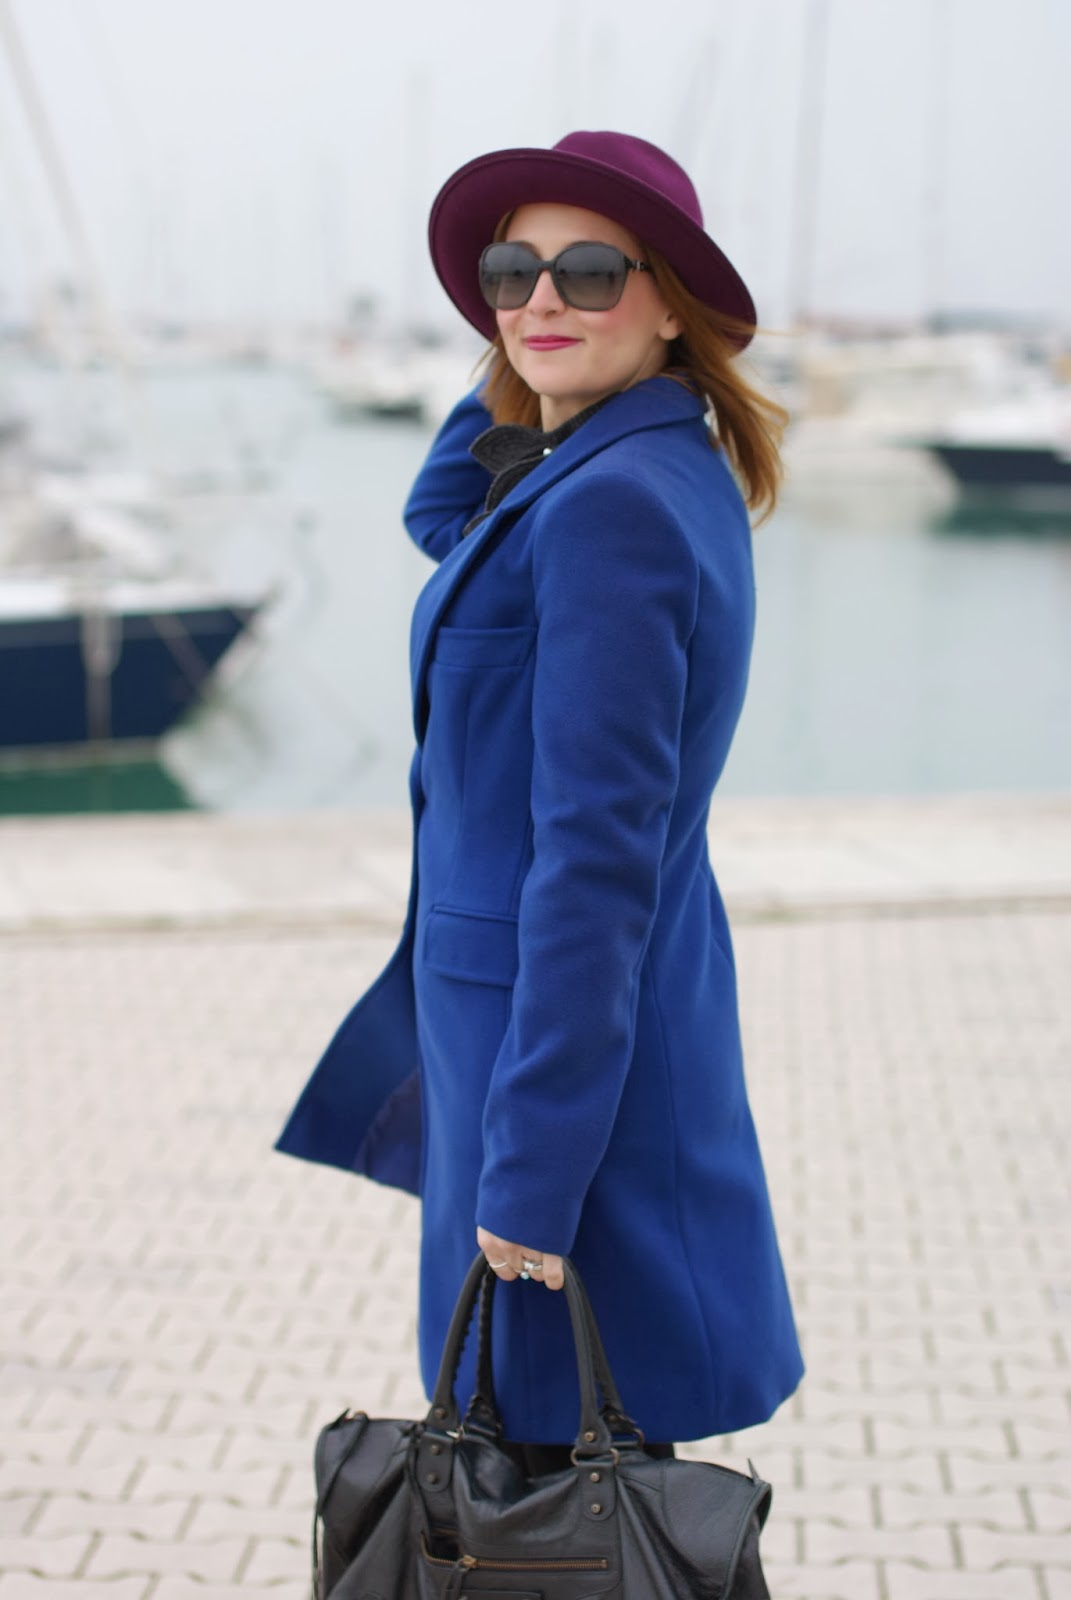 Paola Frani cappotto, cobalt blue coat, Ecua-Andino hat, Fashion and Cookies, fashion blogger